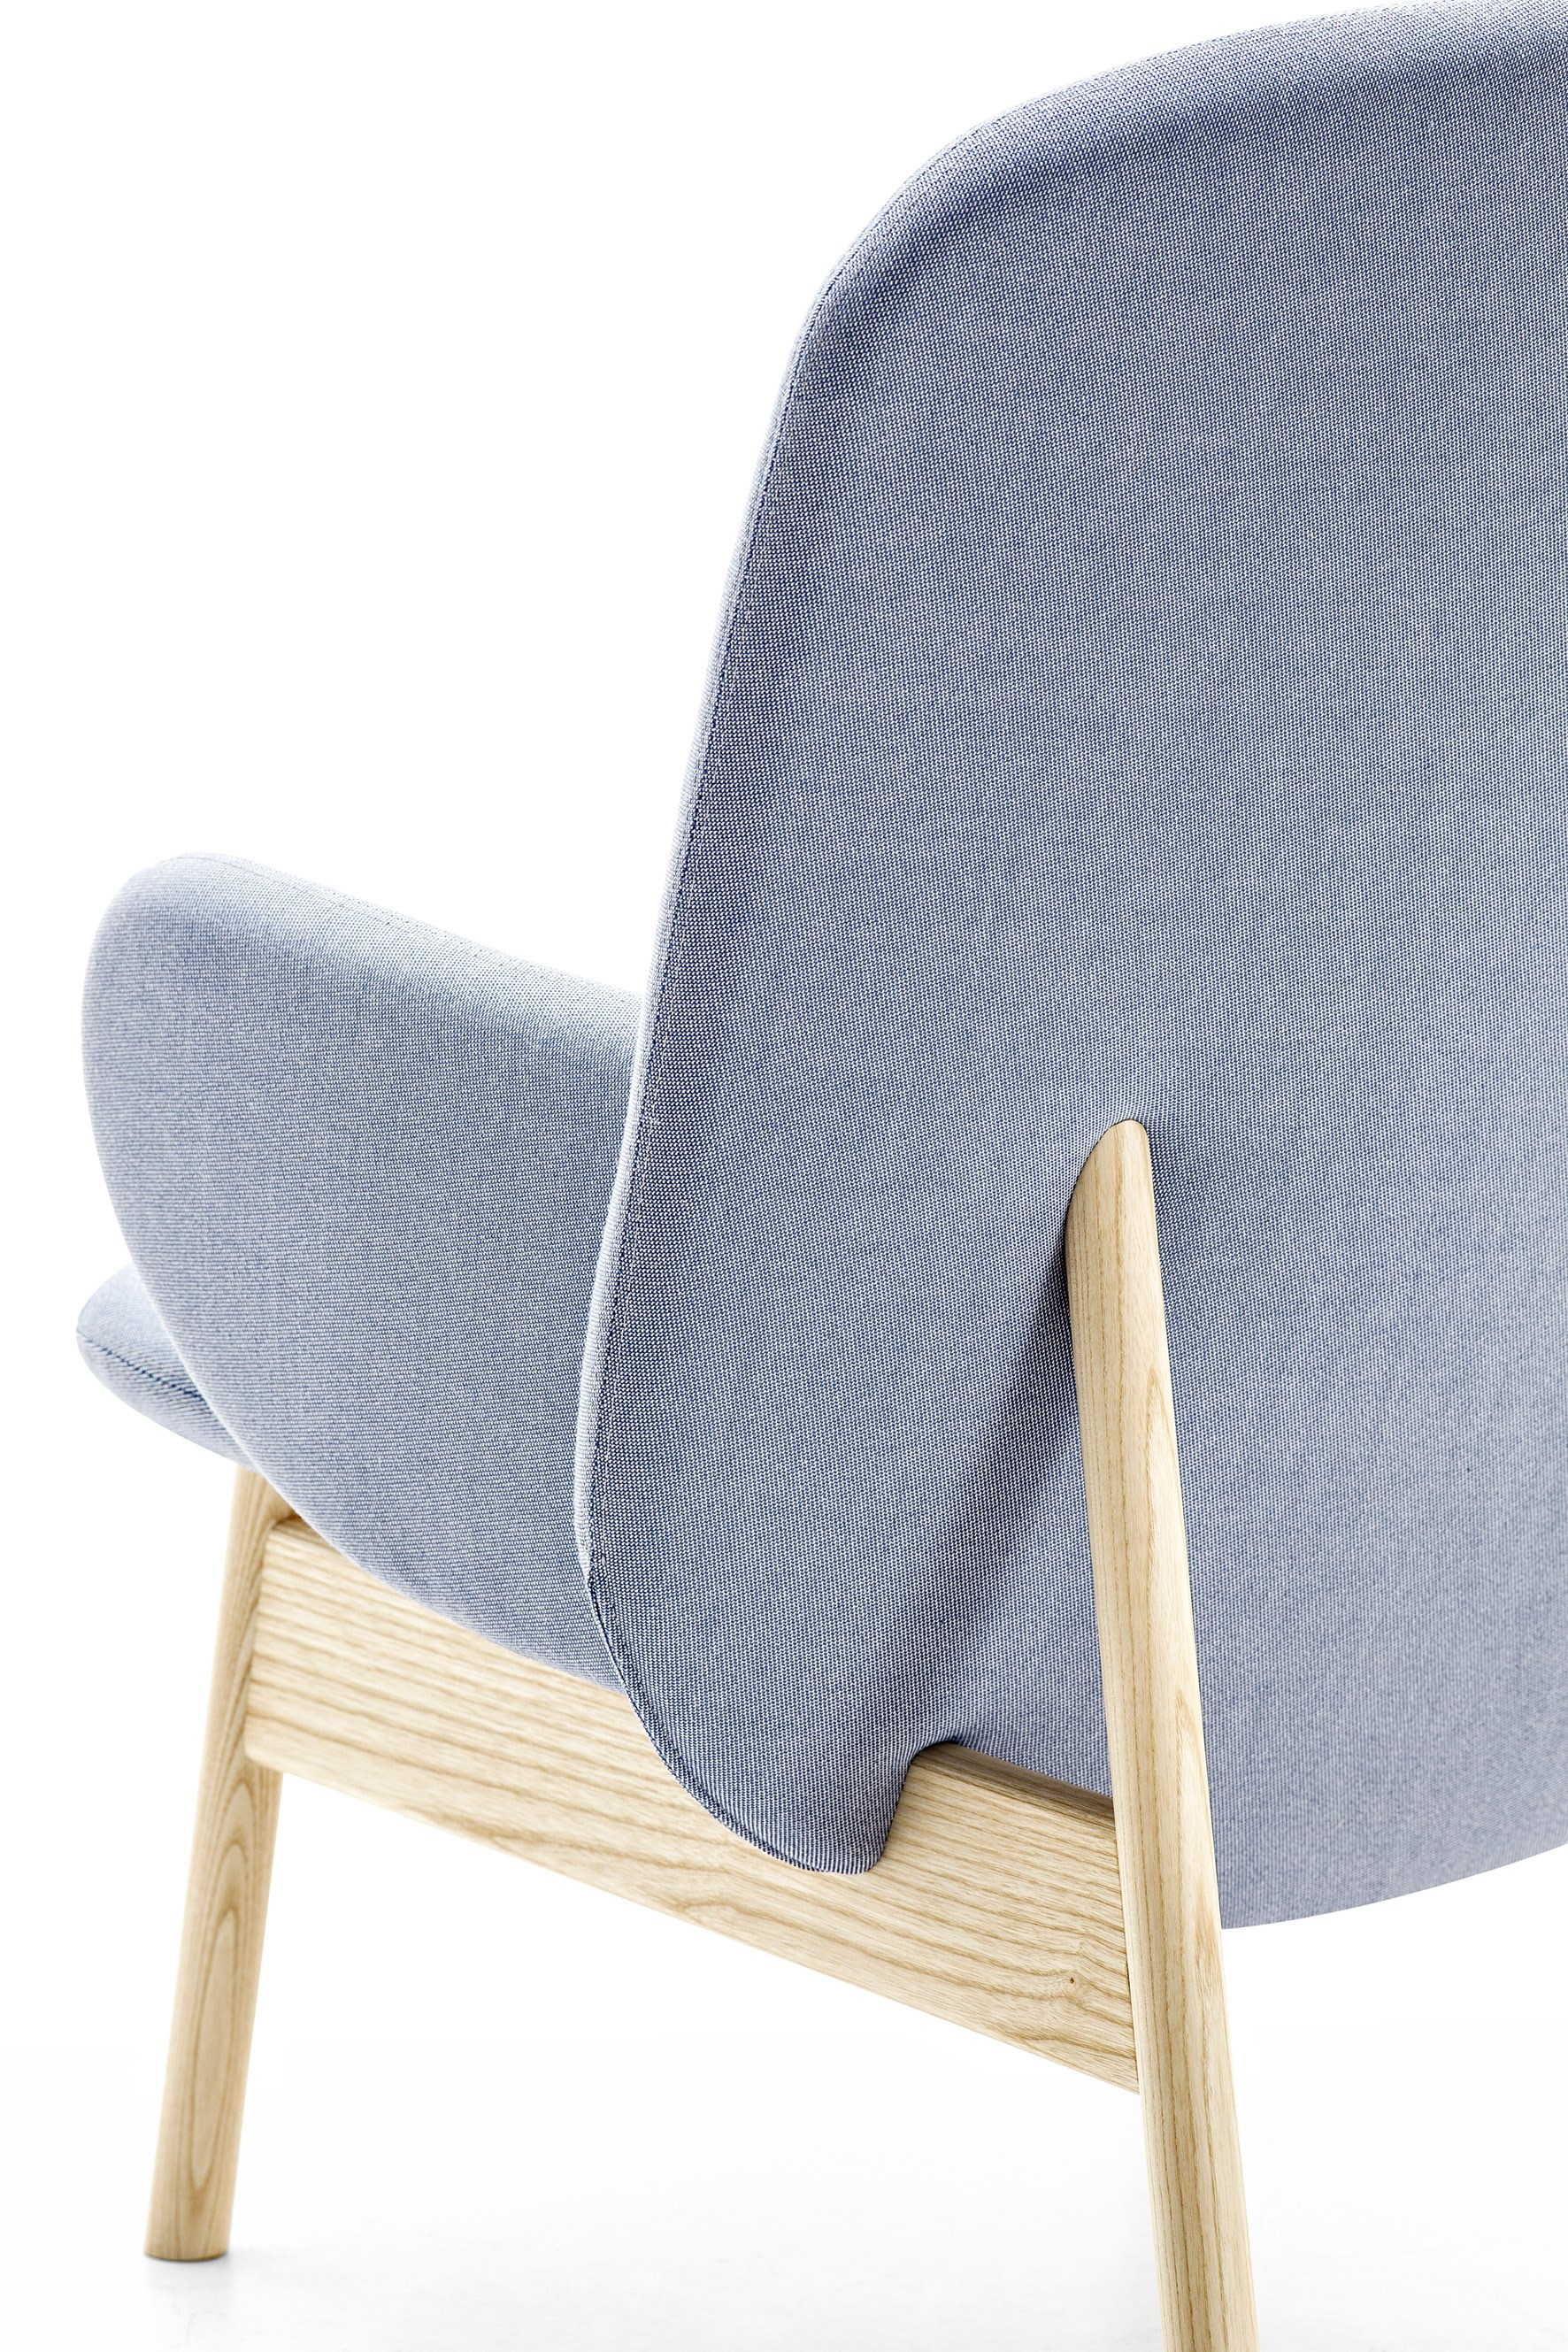 Ala Armchair by Sebastian Herkner for La Cividina